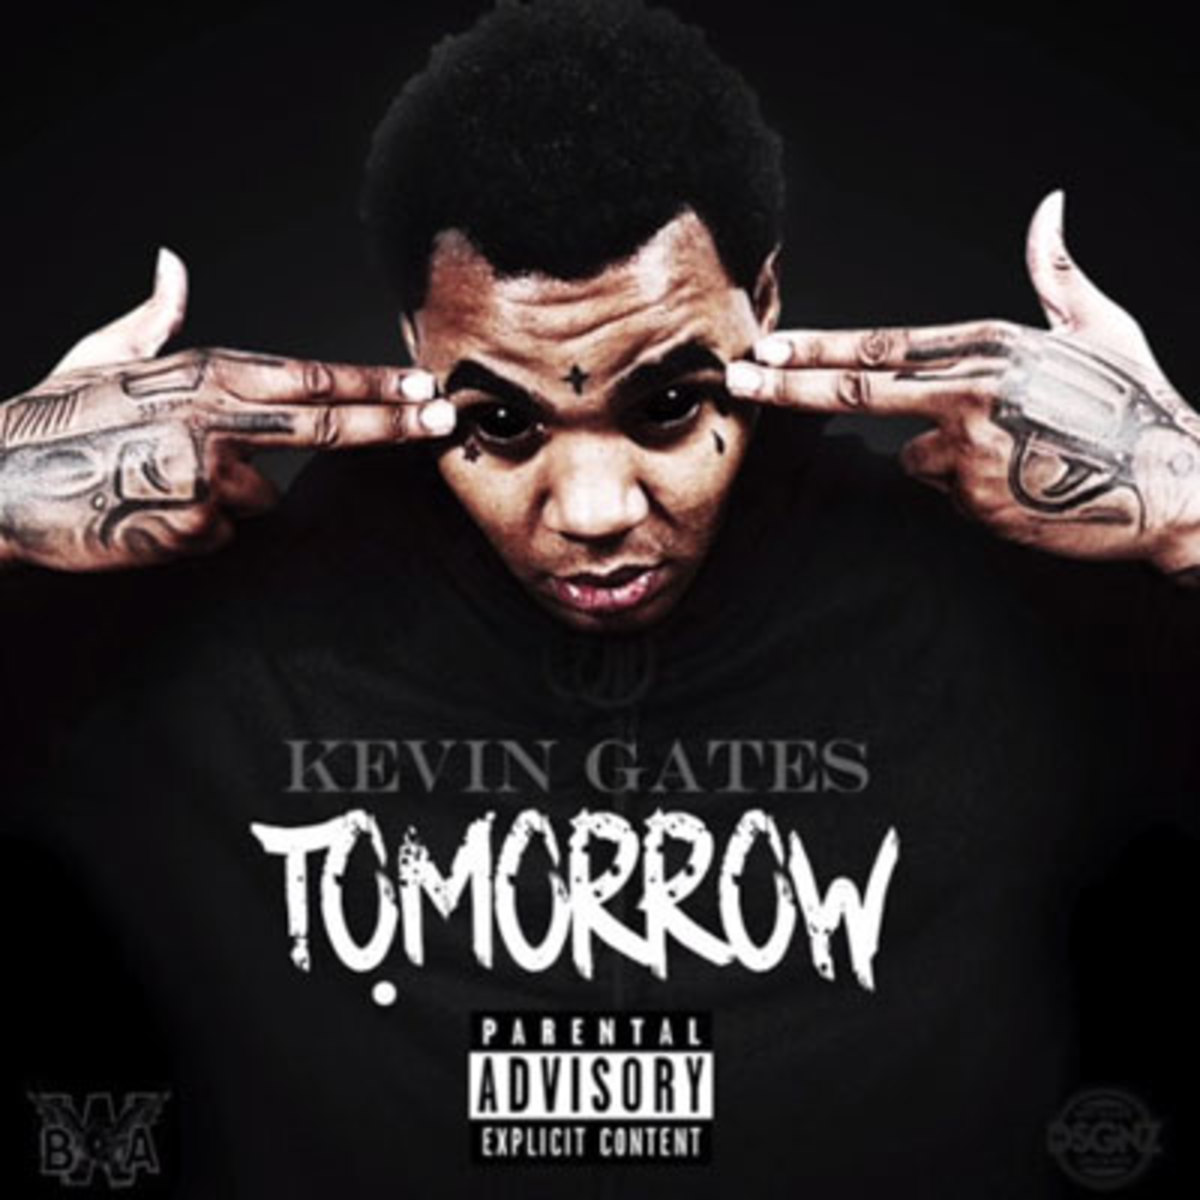 kevin-gates-tomorrow.jpg